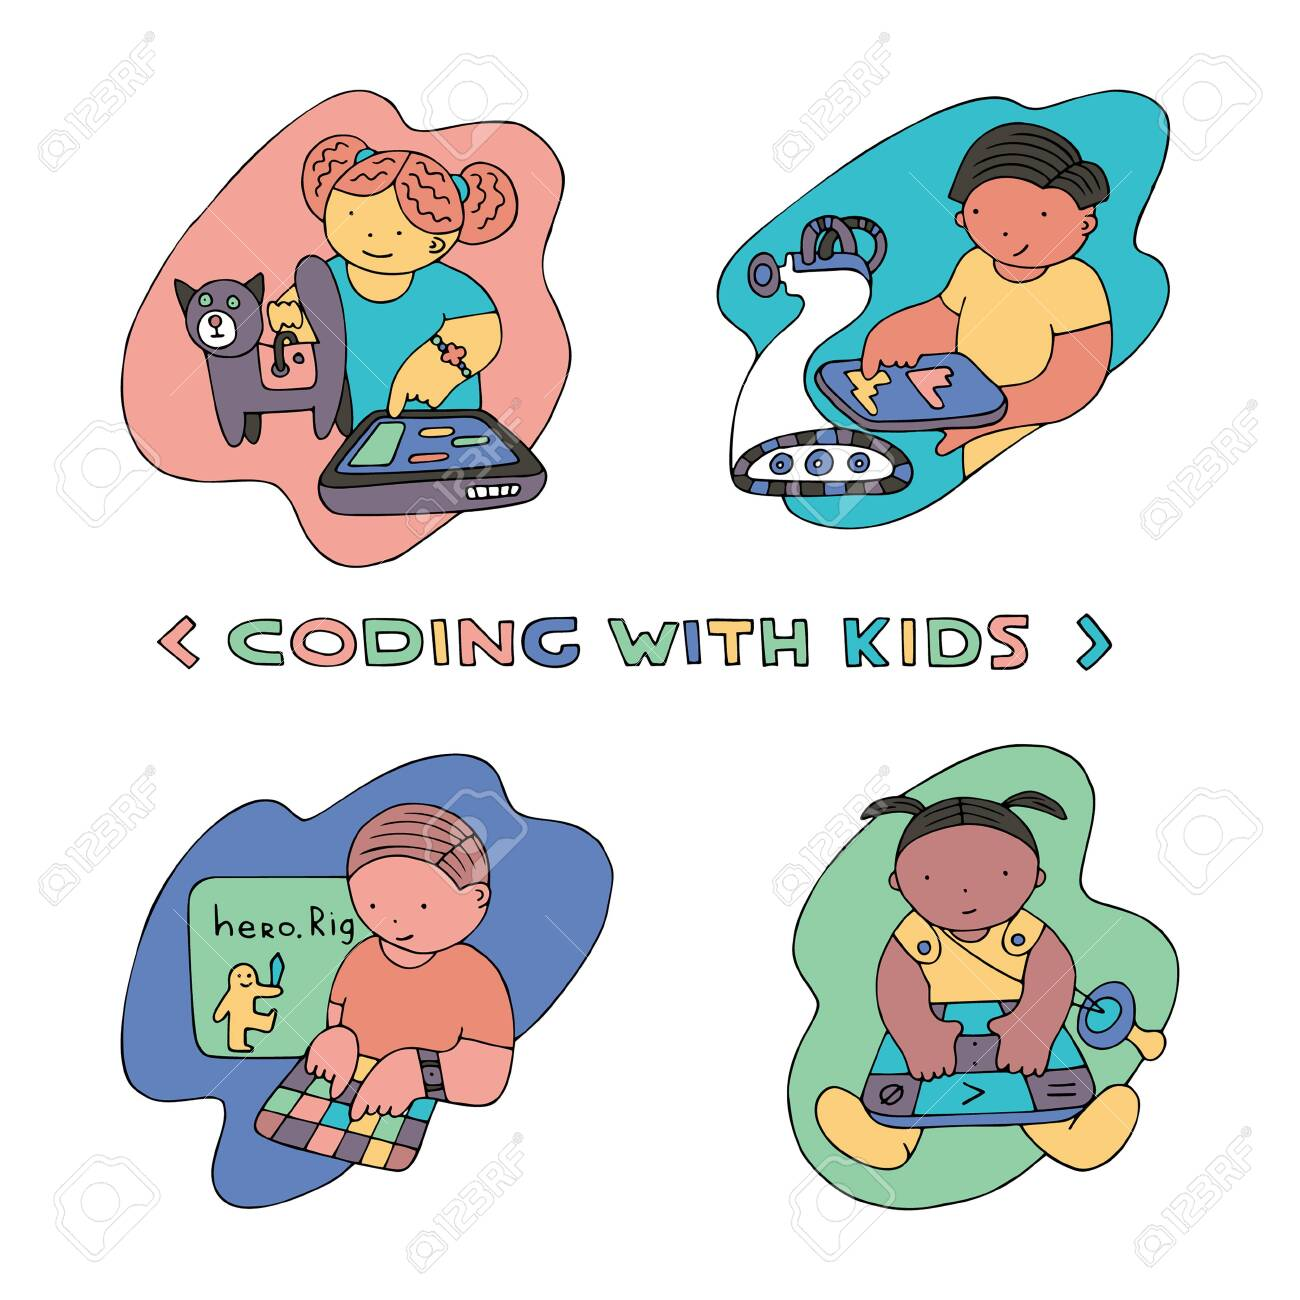 Children coding illustration  Coding for kids articles and sites